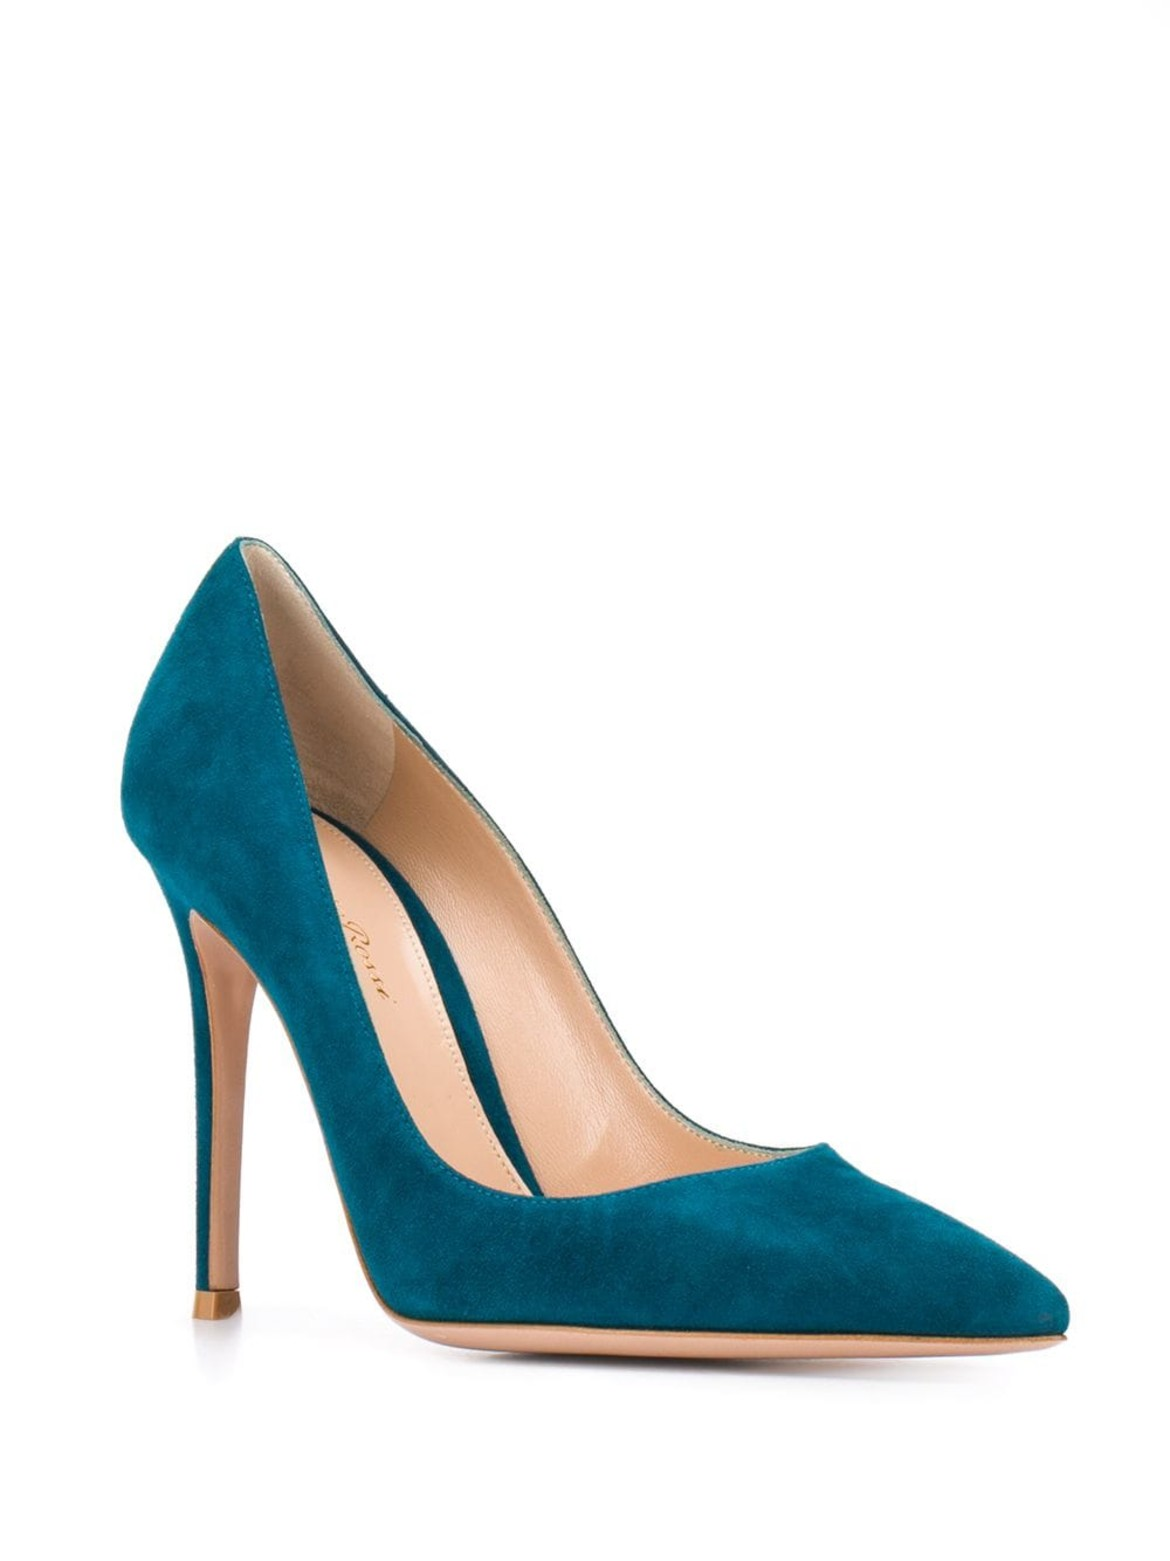 GIANVITO ROSSIpointed toe 105mm pumpsHK$5,045 from farfetch